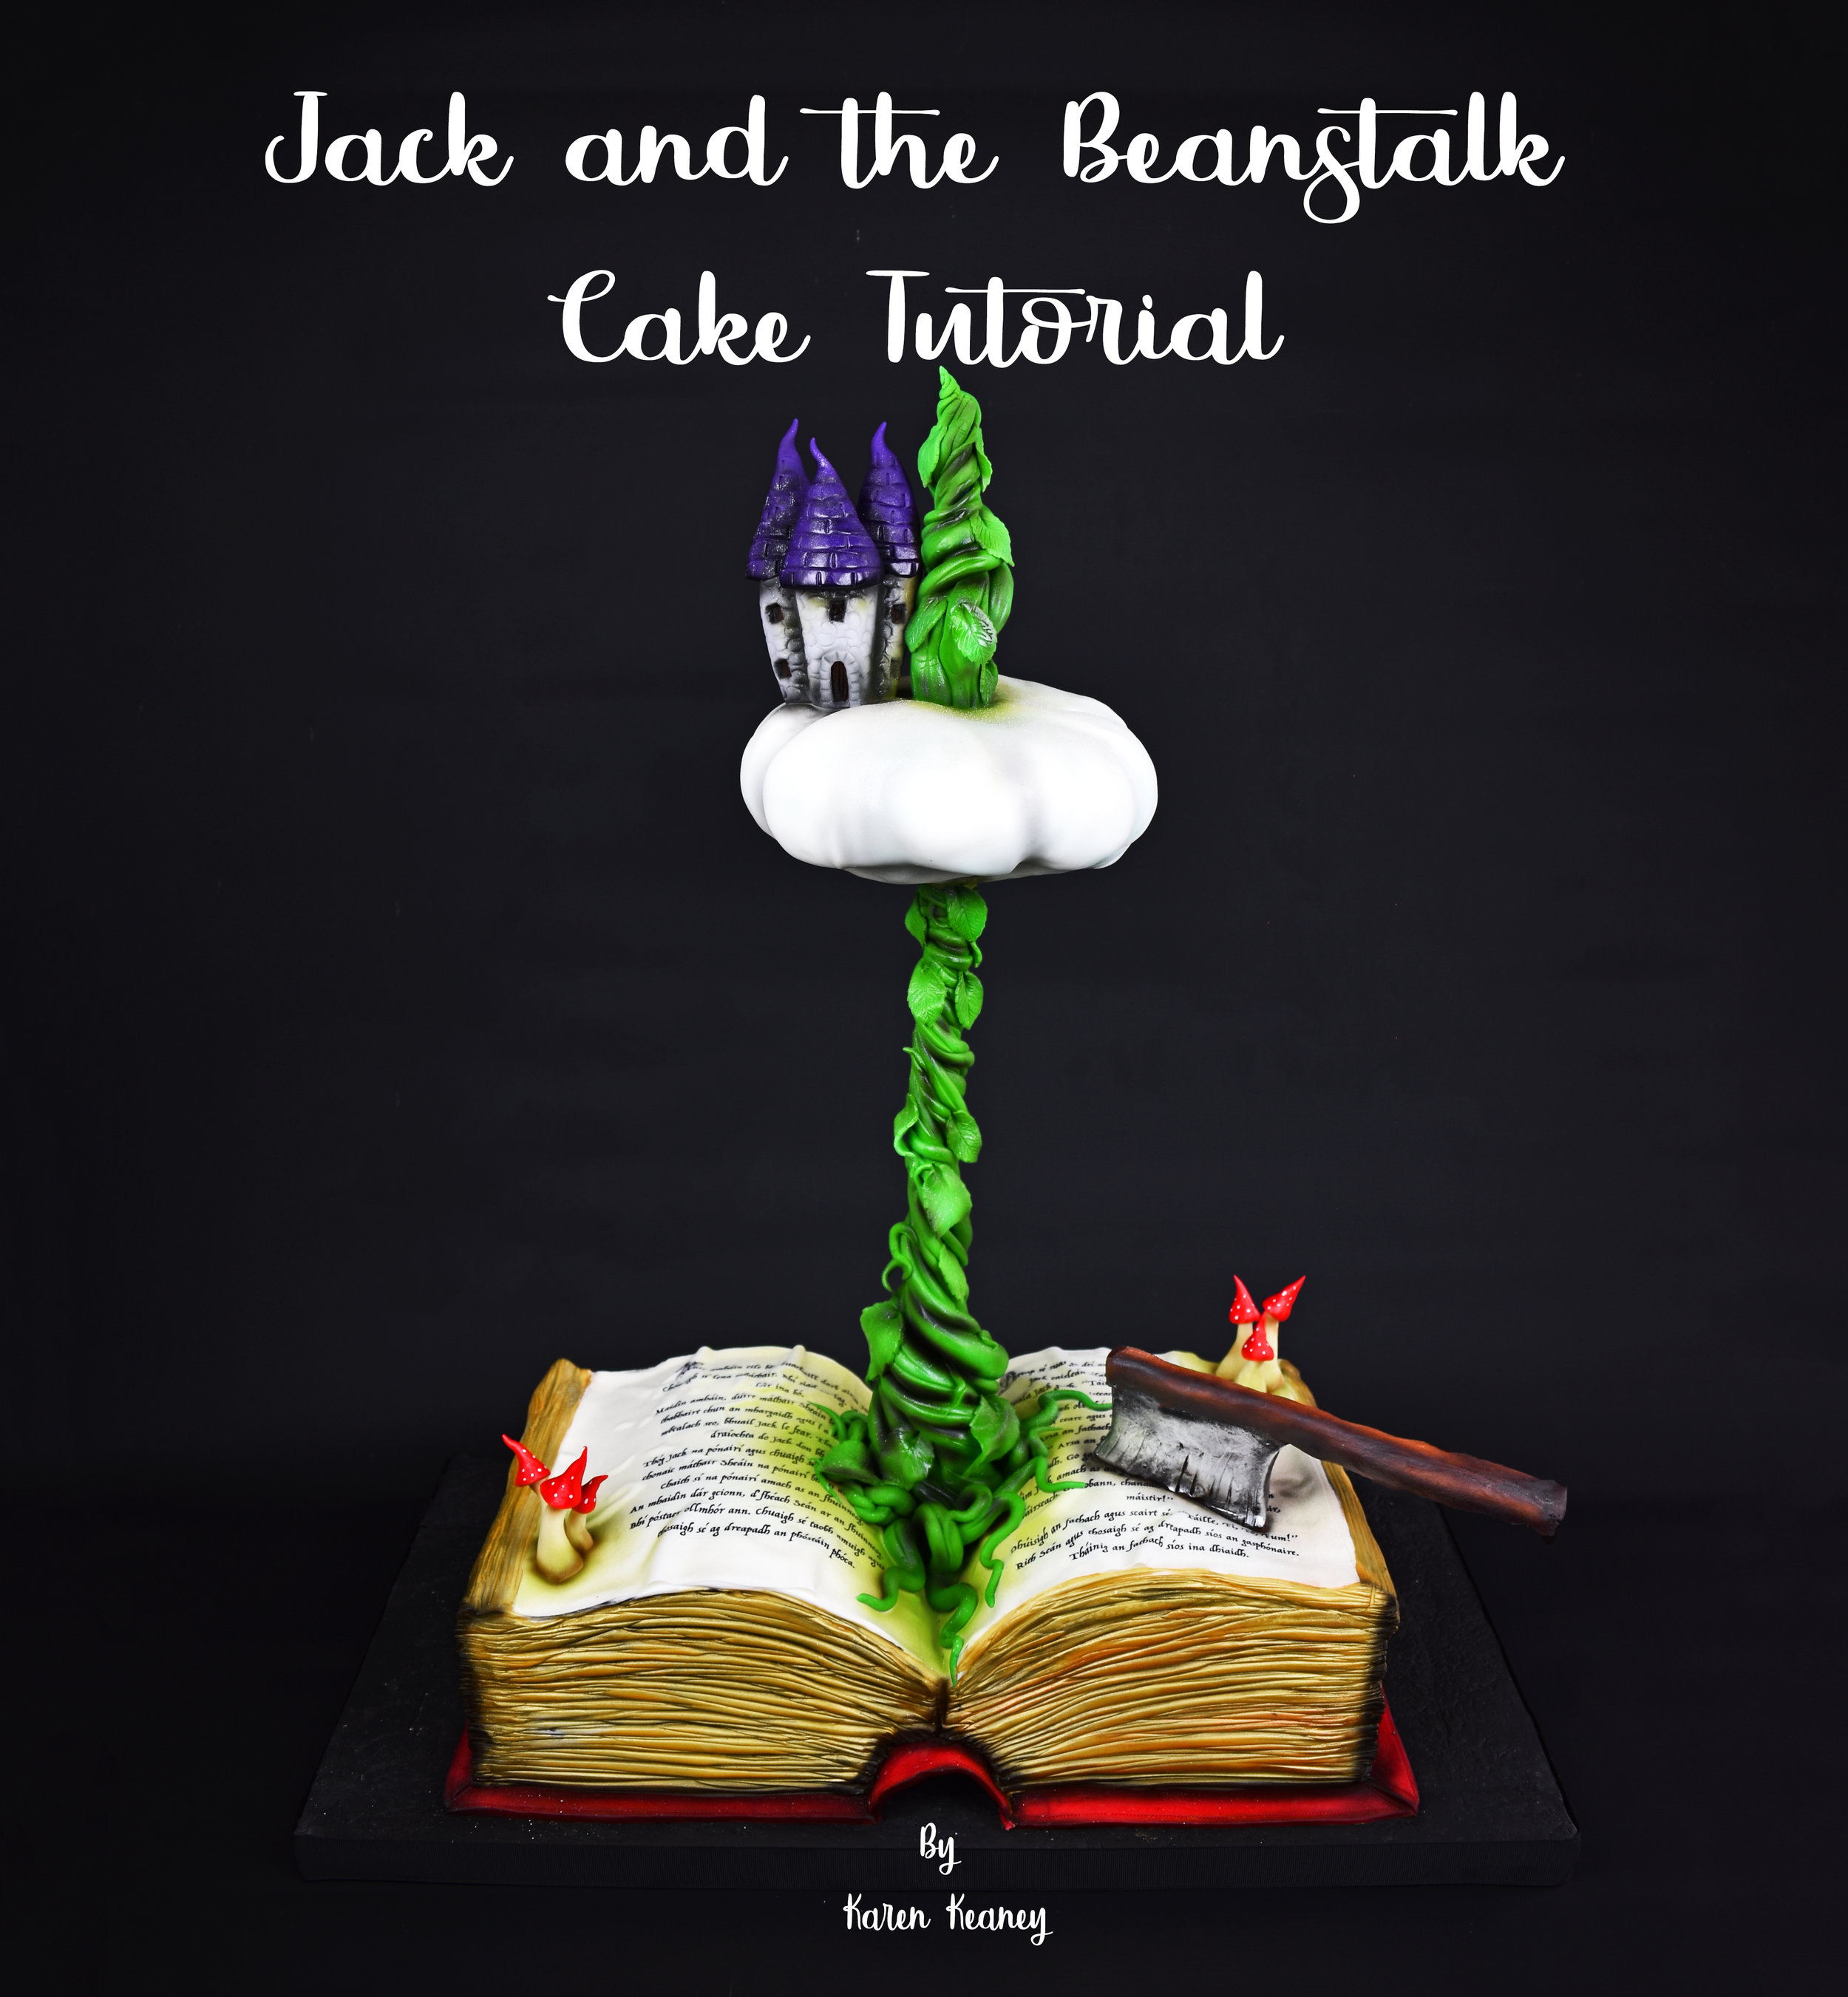 Jack and the Beanstalk Cake Tutorial